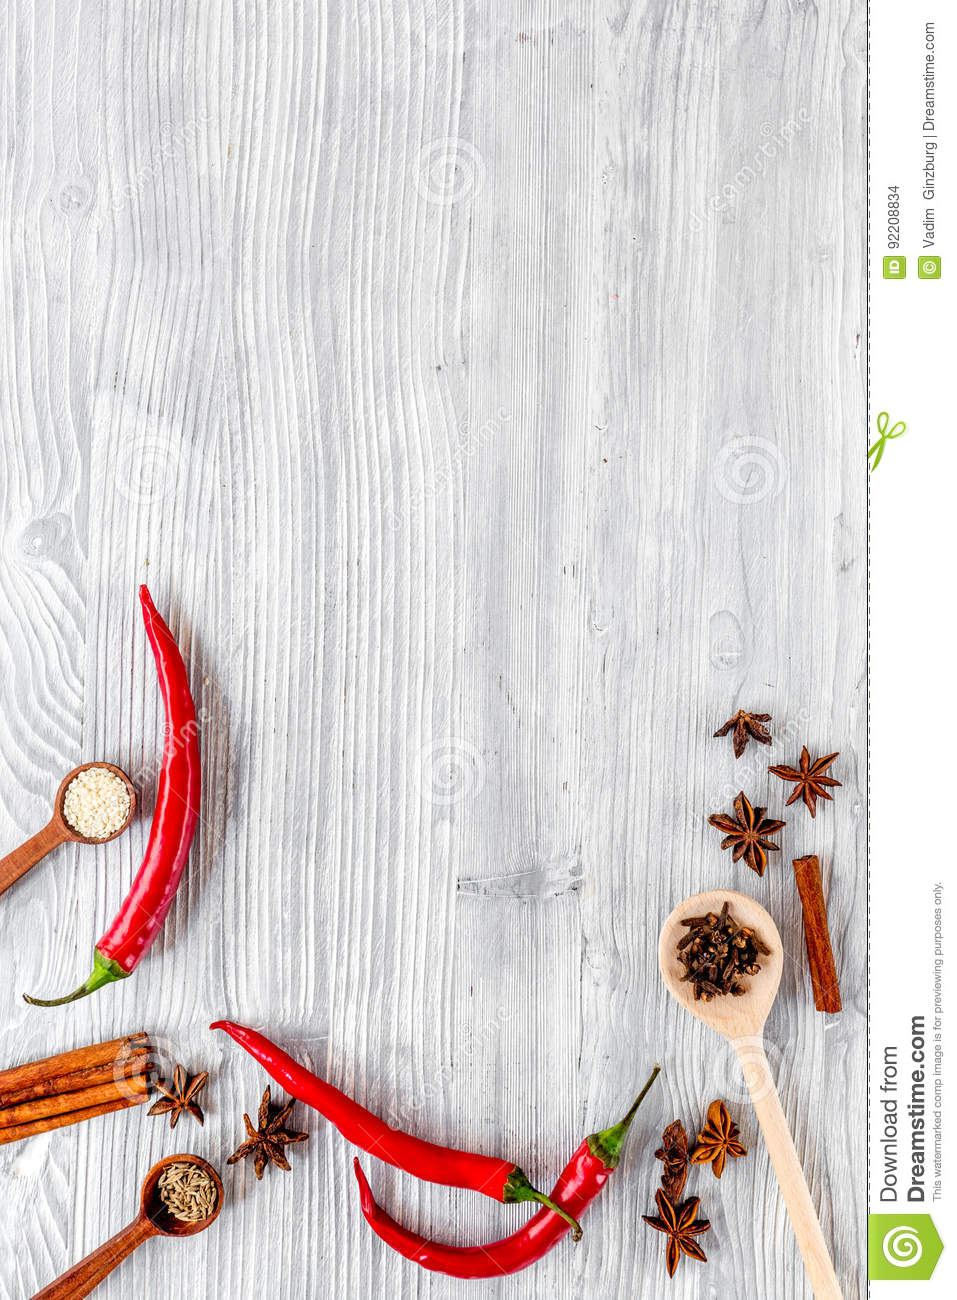 Kitchen Table Background cooking with spices, vanilla, cinnamon on kitchen table background